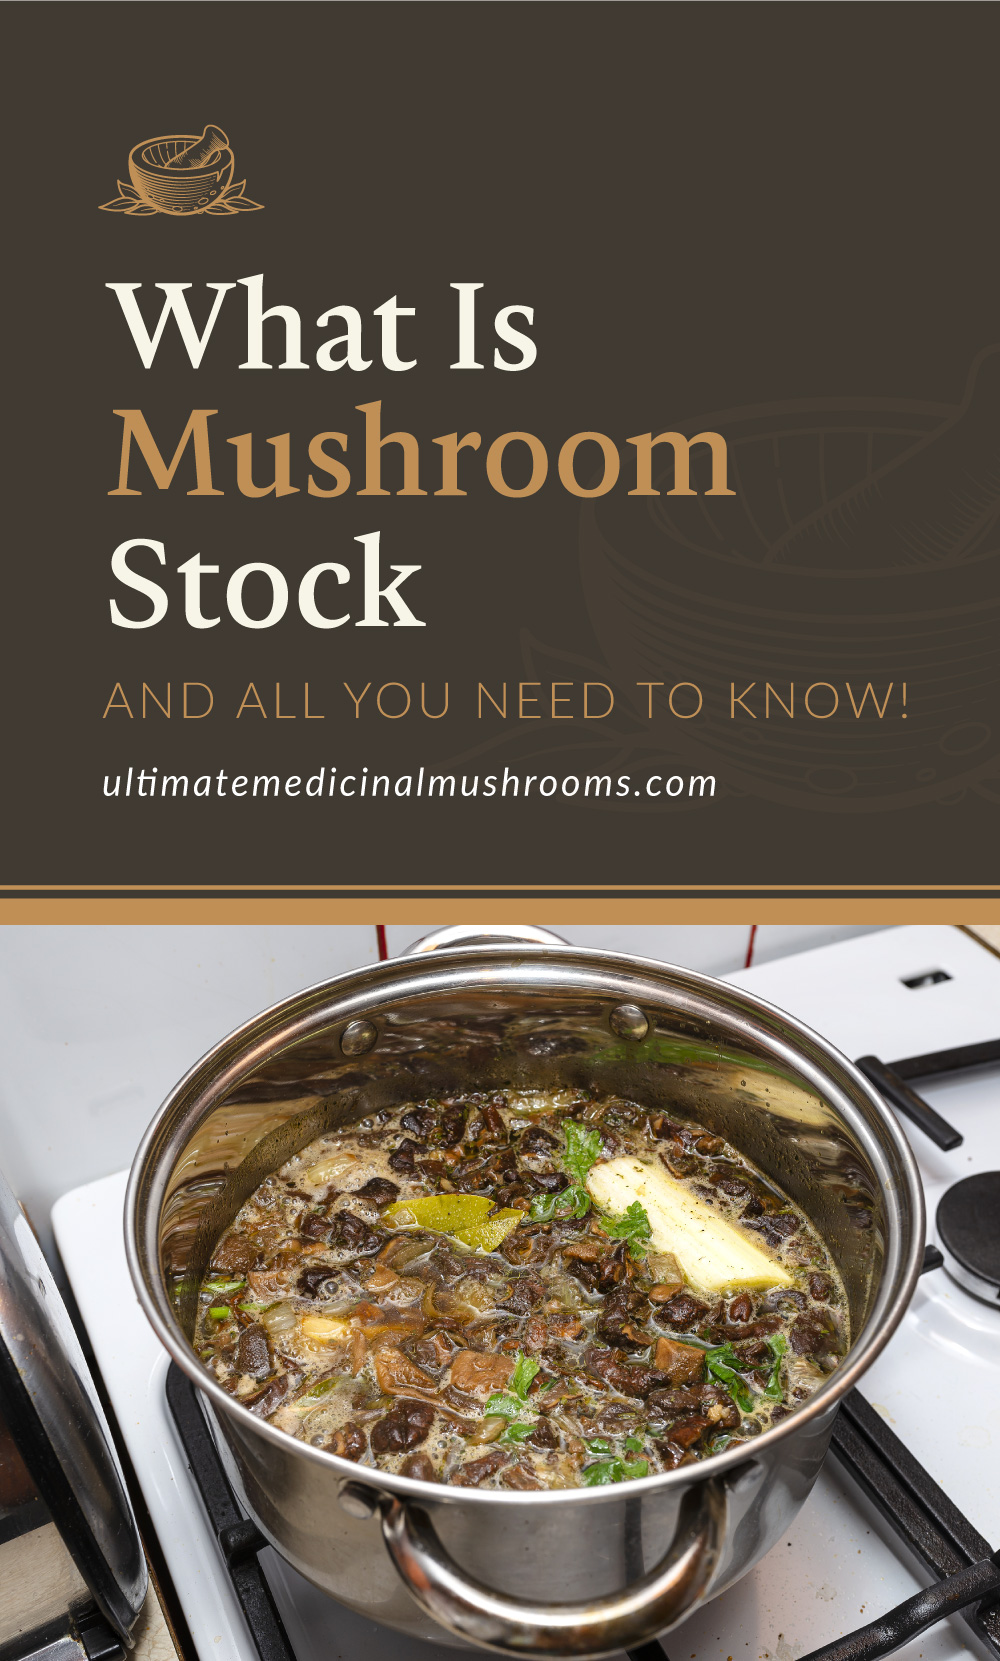 """Text area which says """"What Is Mushroom Stock and All You Need To Know!, ultimatemedicinalmushrooms.com"""" followed by mushrooms with herbs being boiled in a pot to make broth"""